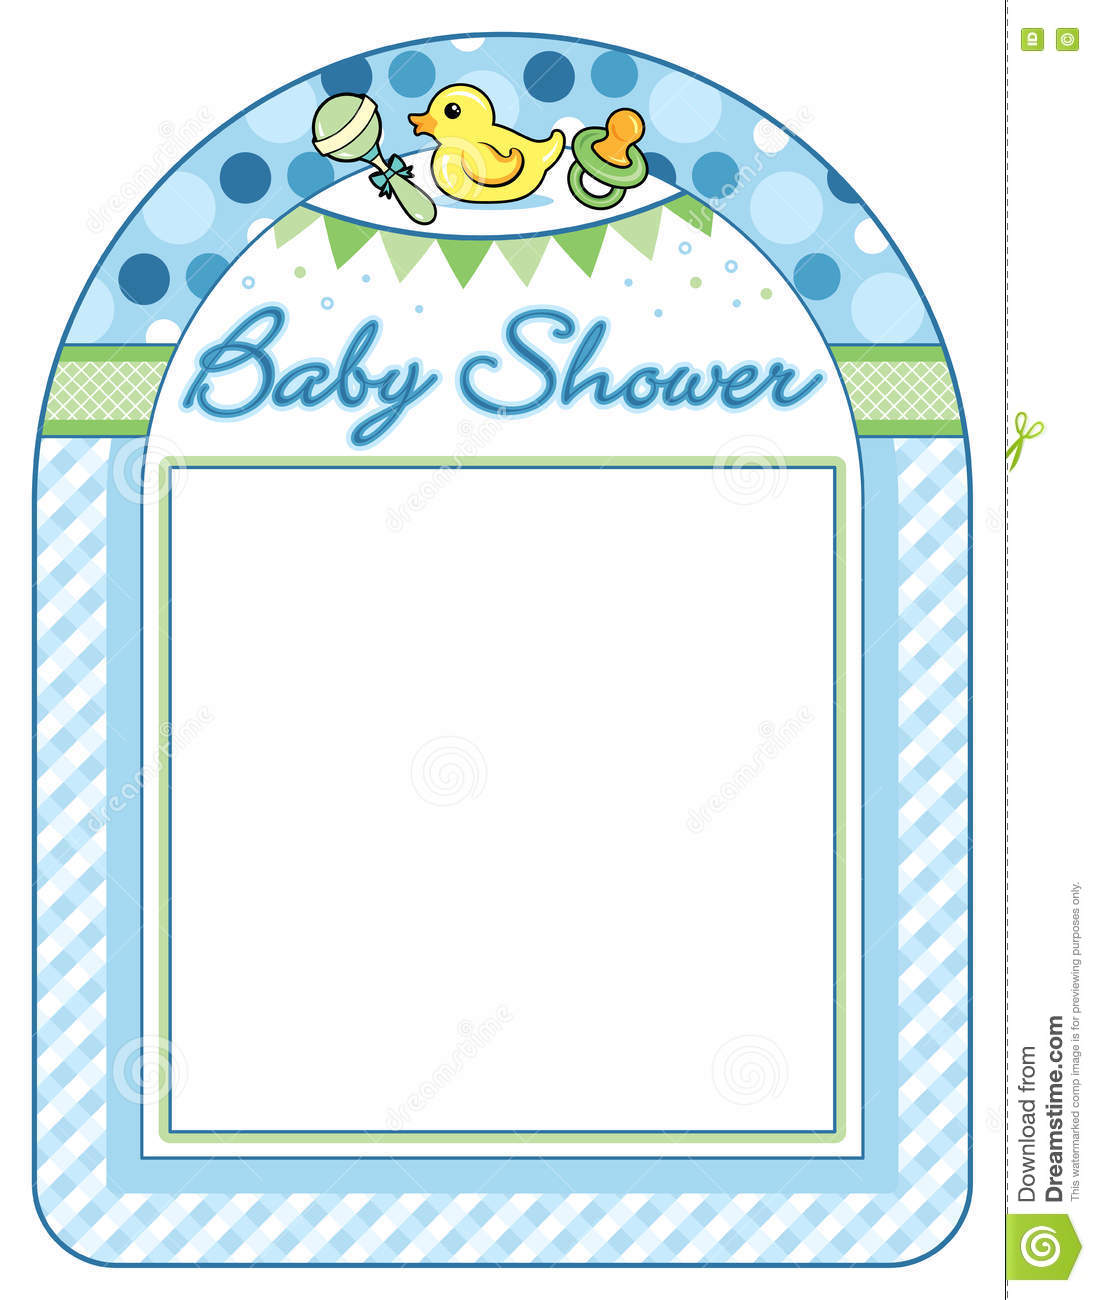 This is a baby shower frame. It is designed to print at 8 1/2 x 11 which is  standard printer paper size. This is a vector based design.